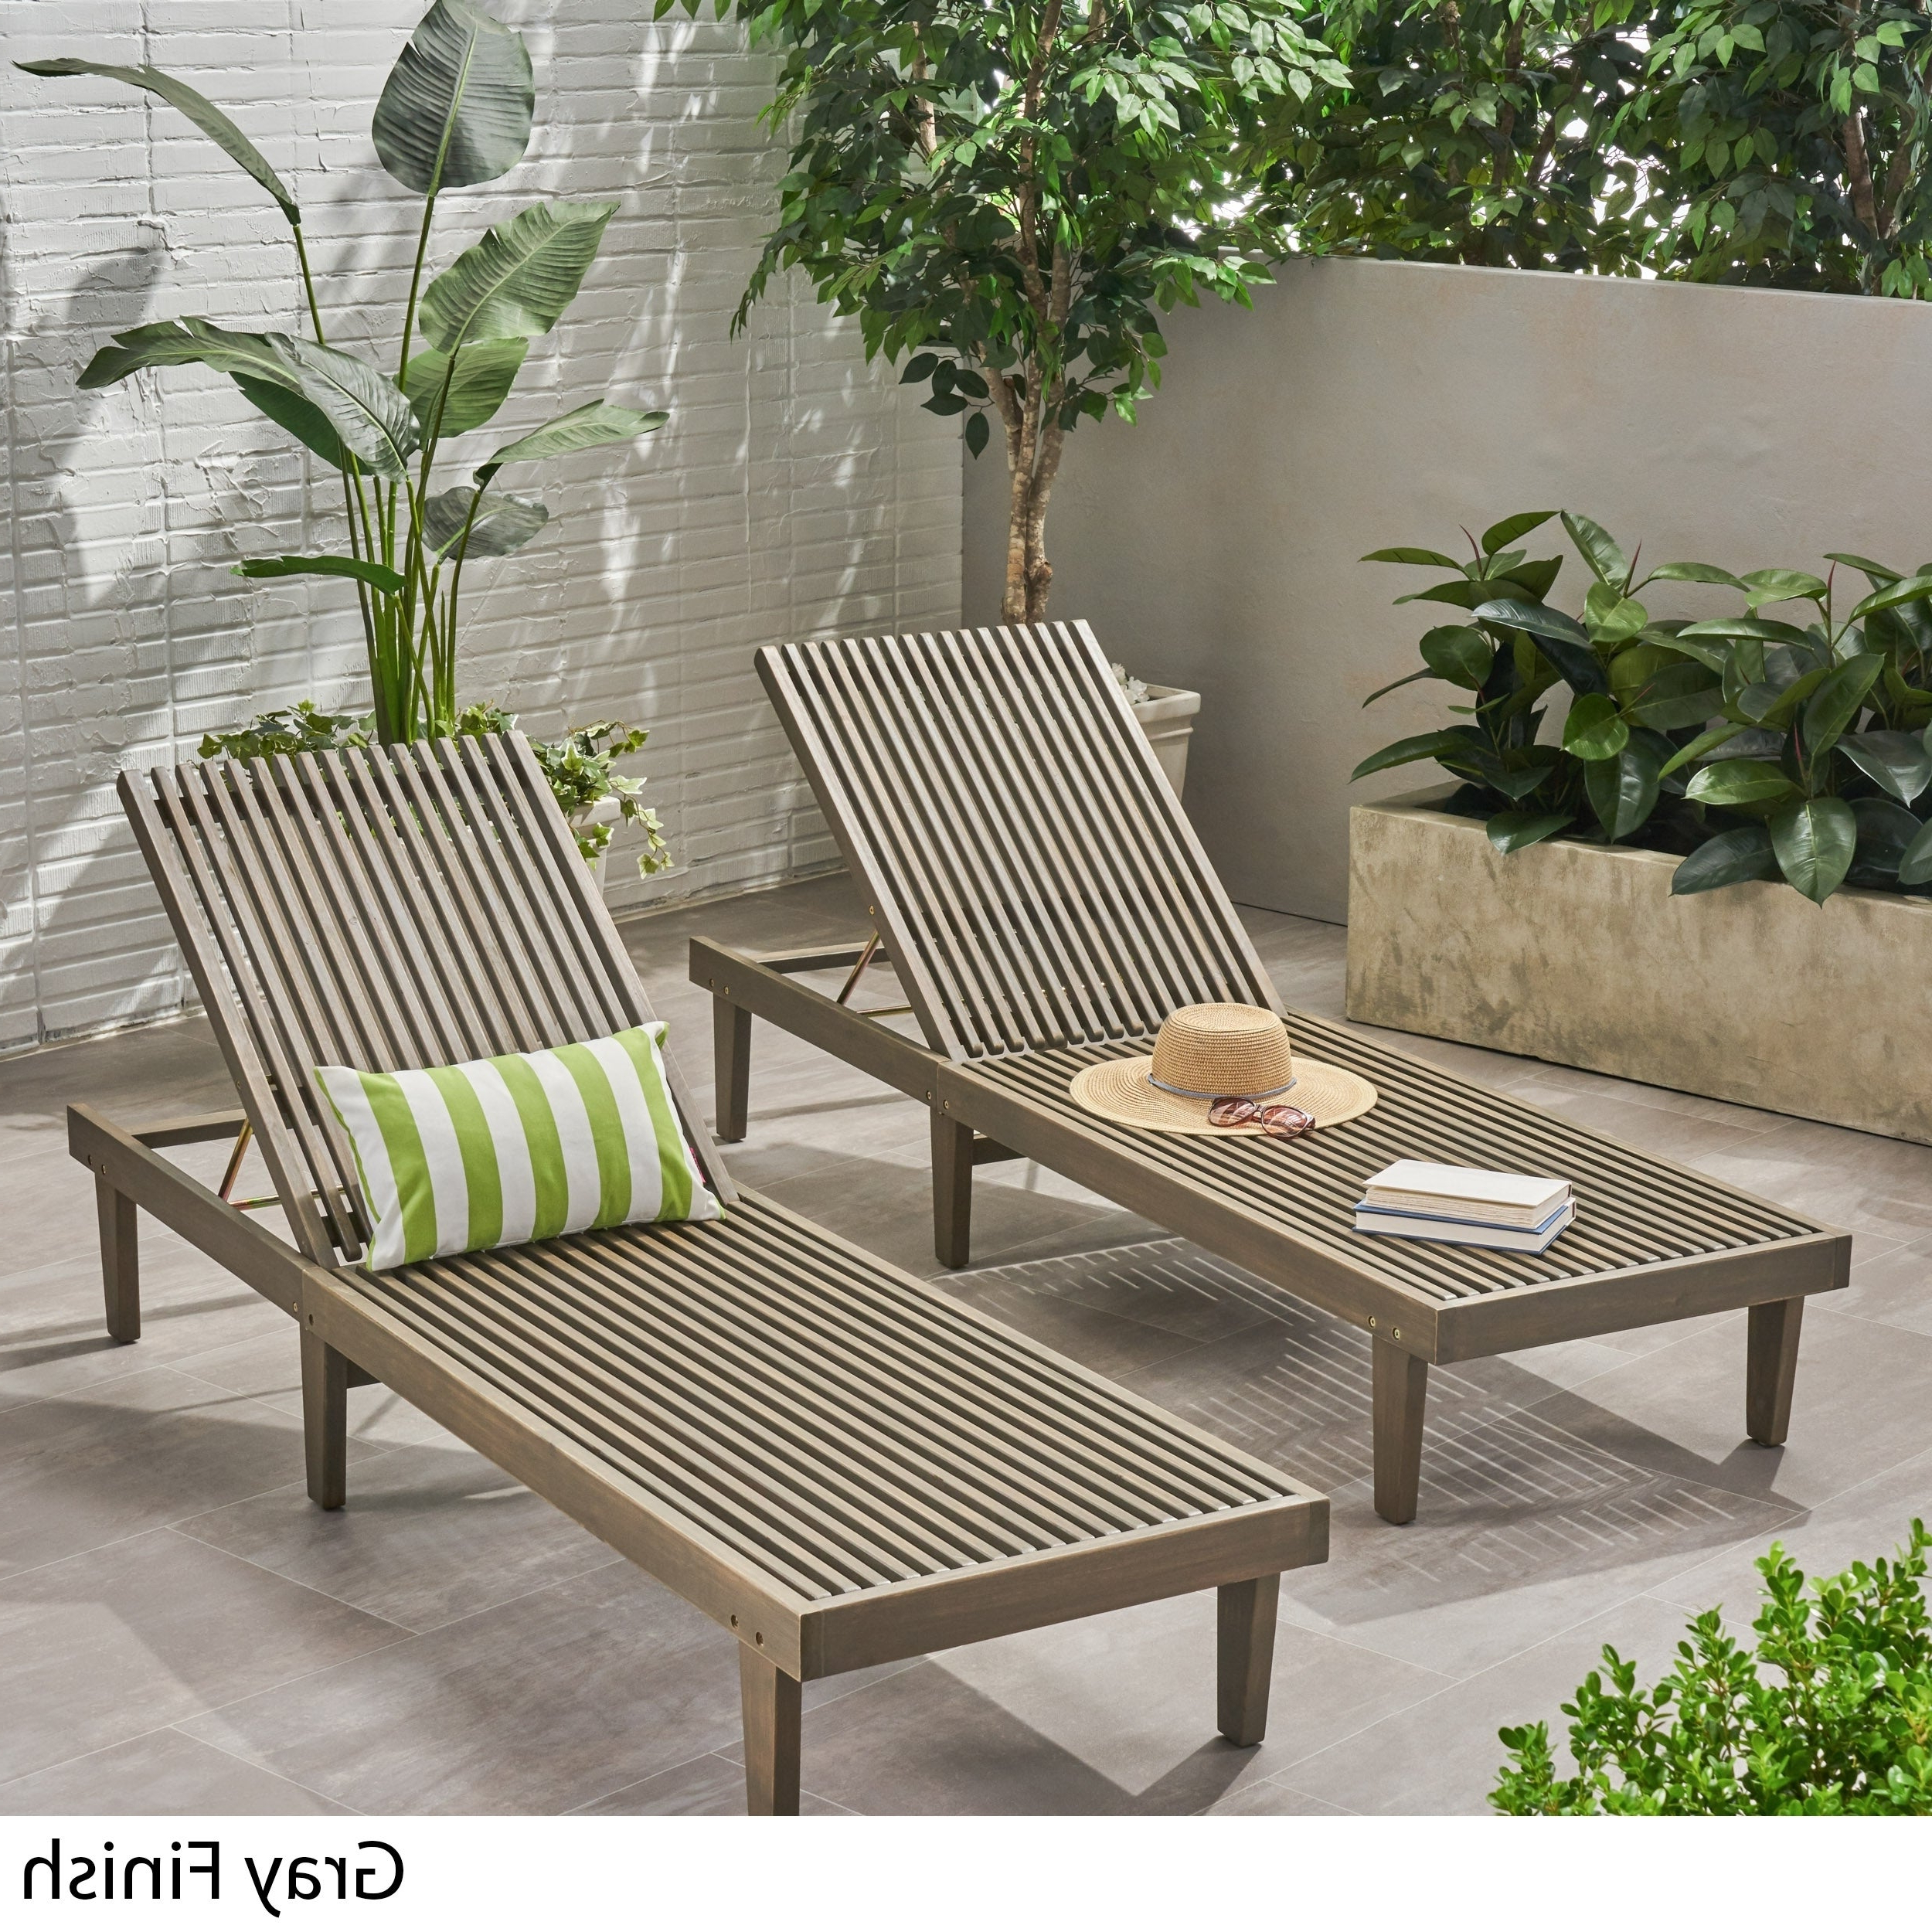 Widely Used Nadine Outdoor Adjustable Wood Chaise Lounge (set Of 2)christopher Knight Home Within Havenside Home Ormond Outdoor Hardwood Sun Loungers With Tray (View 22 of 25)